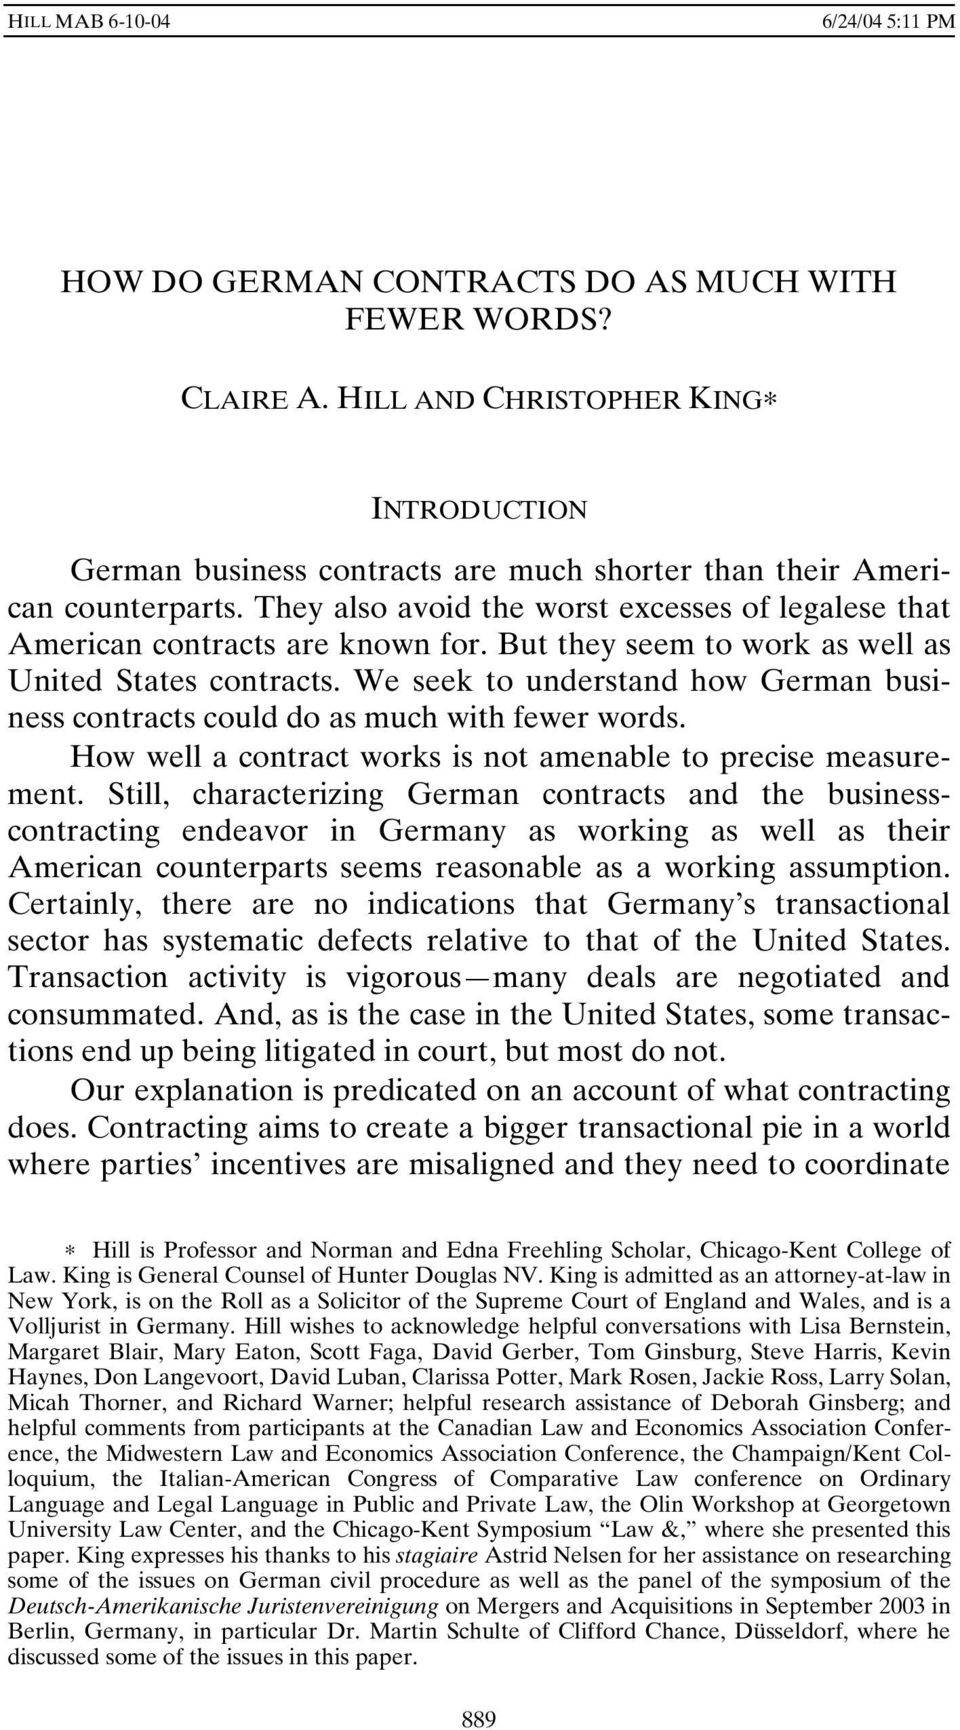 We seek to understand how German business contracts could do as much with fewer words. How well a contract works is not amenable to precise measurement.